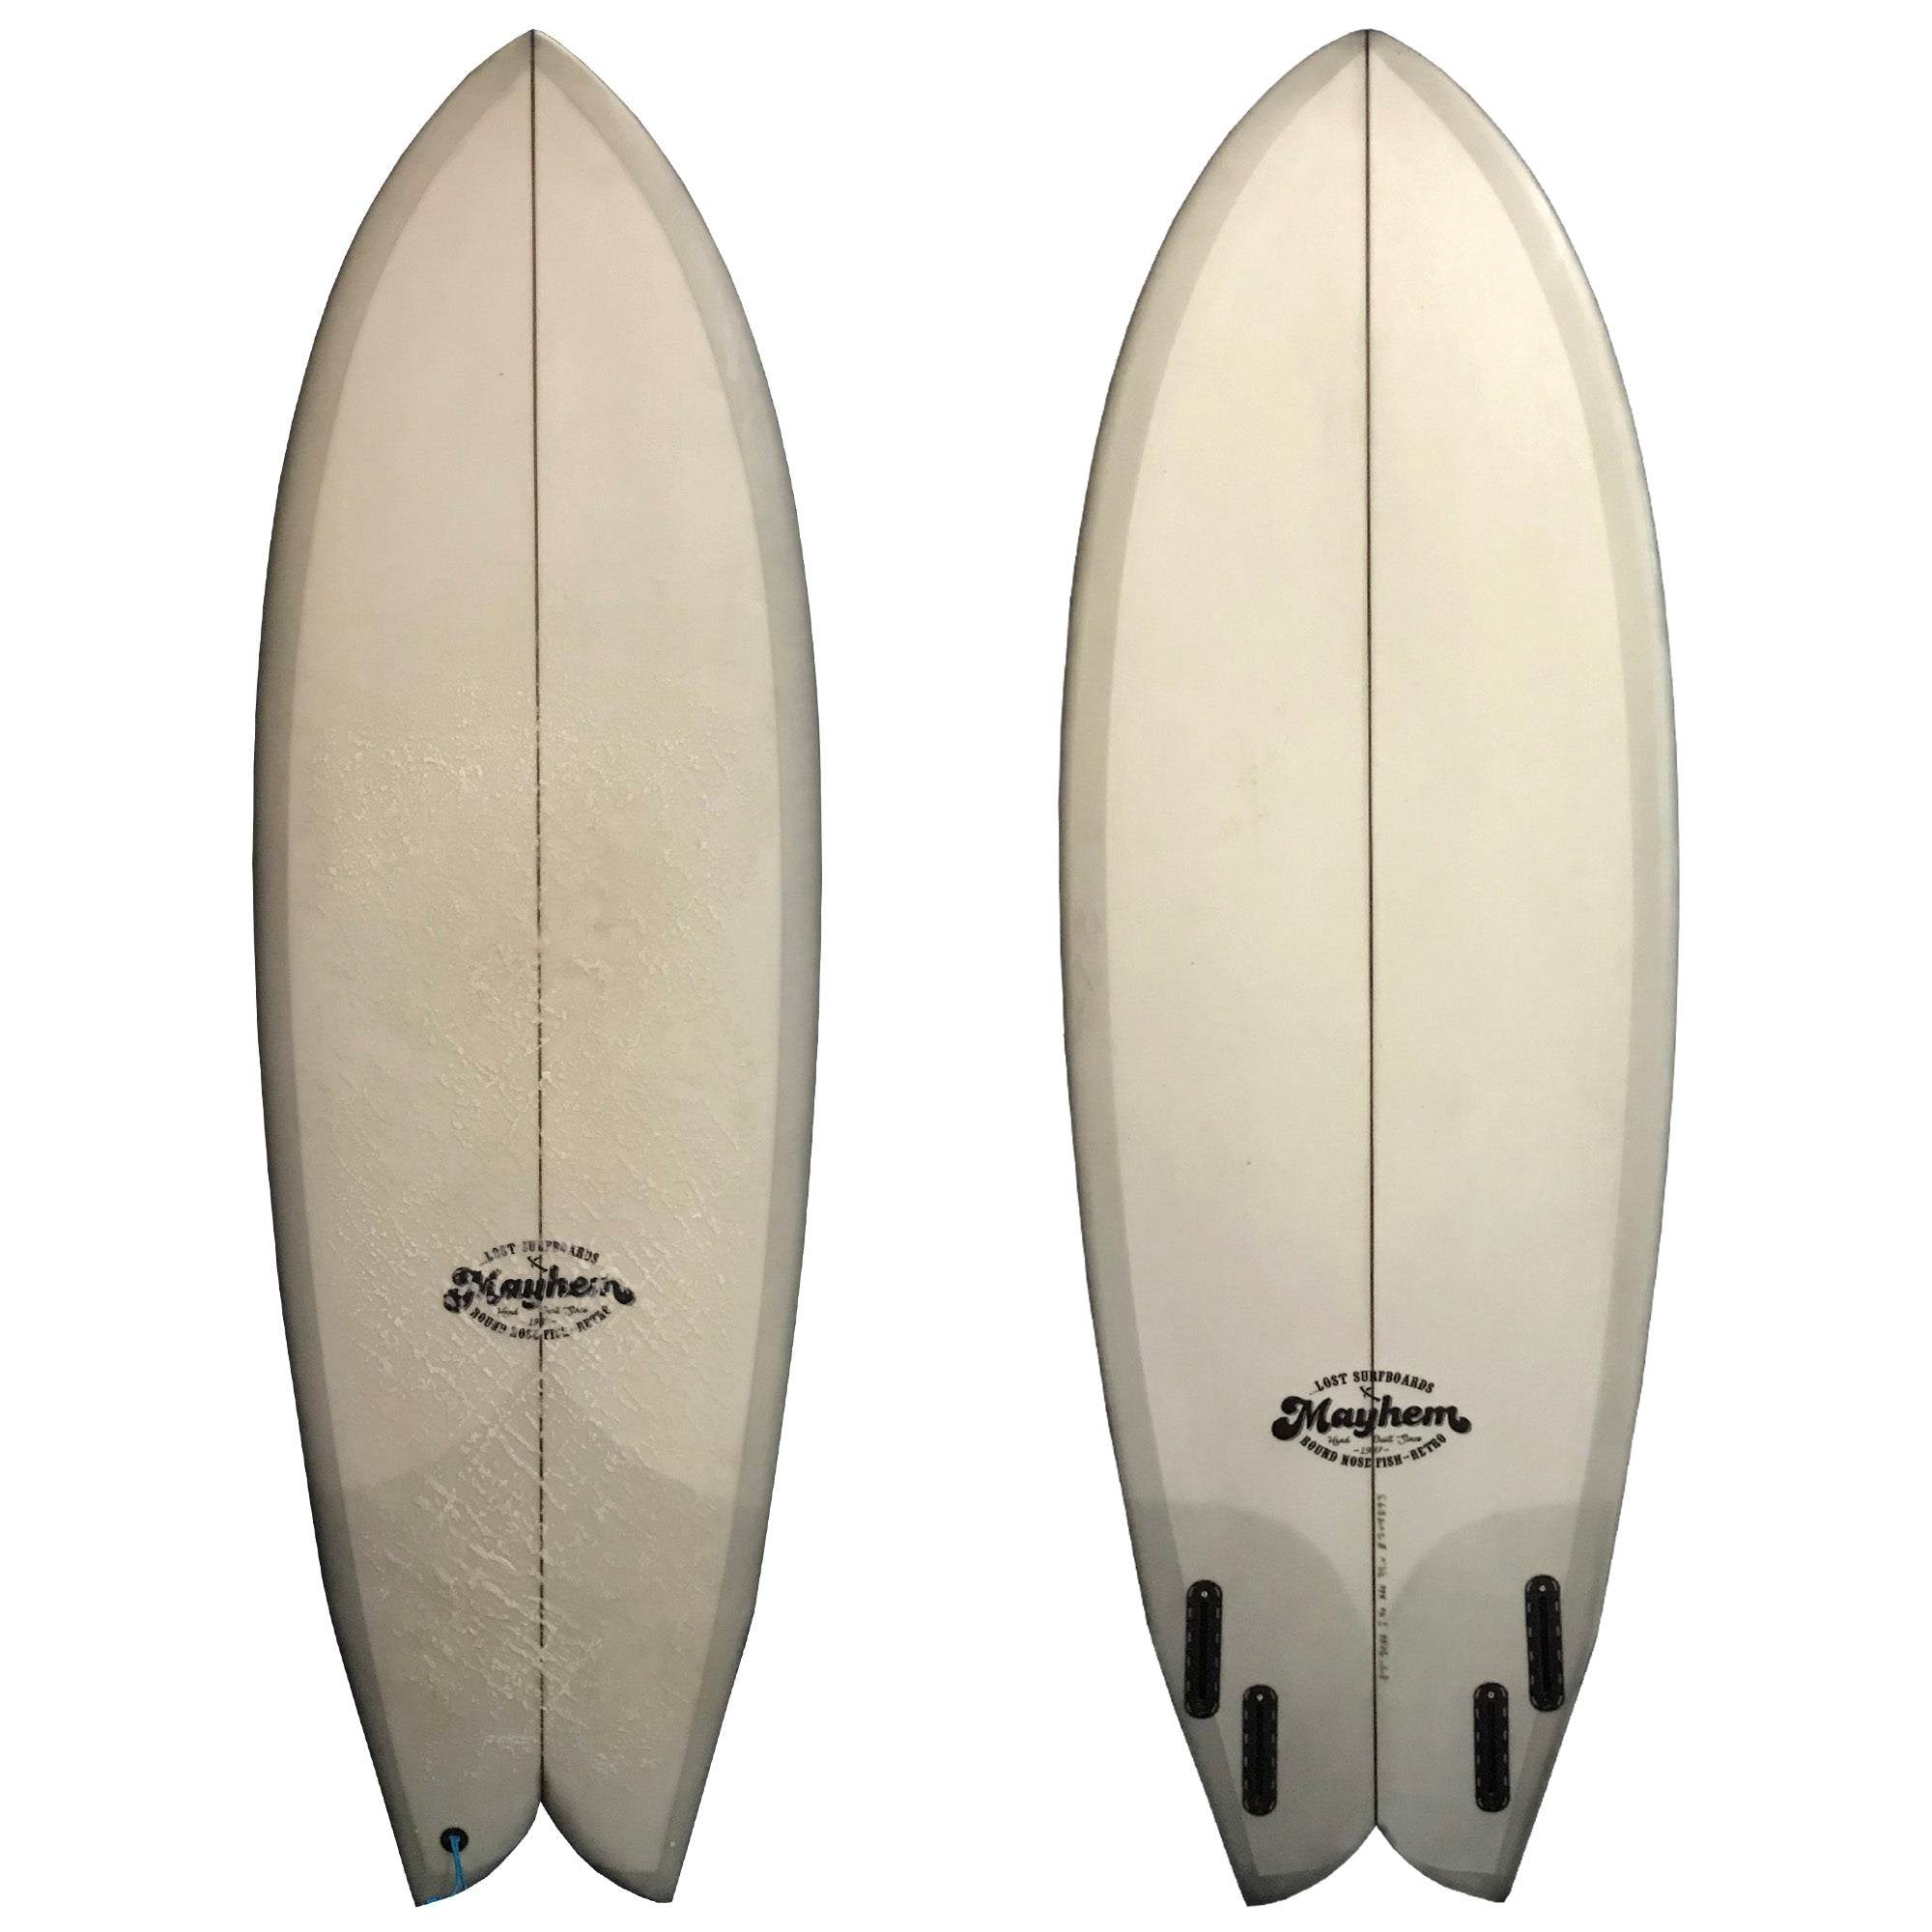 Lost Surfboards Round Nose Fish Retro 5'7 Used Surfboard